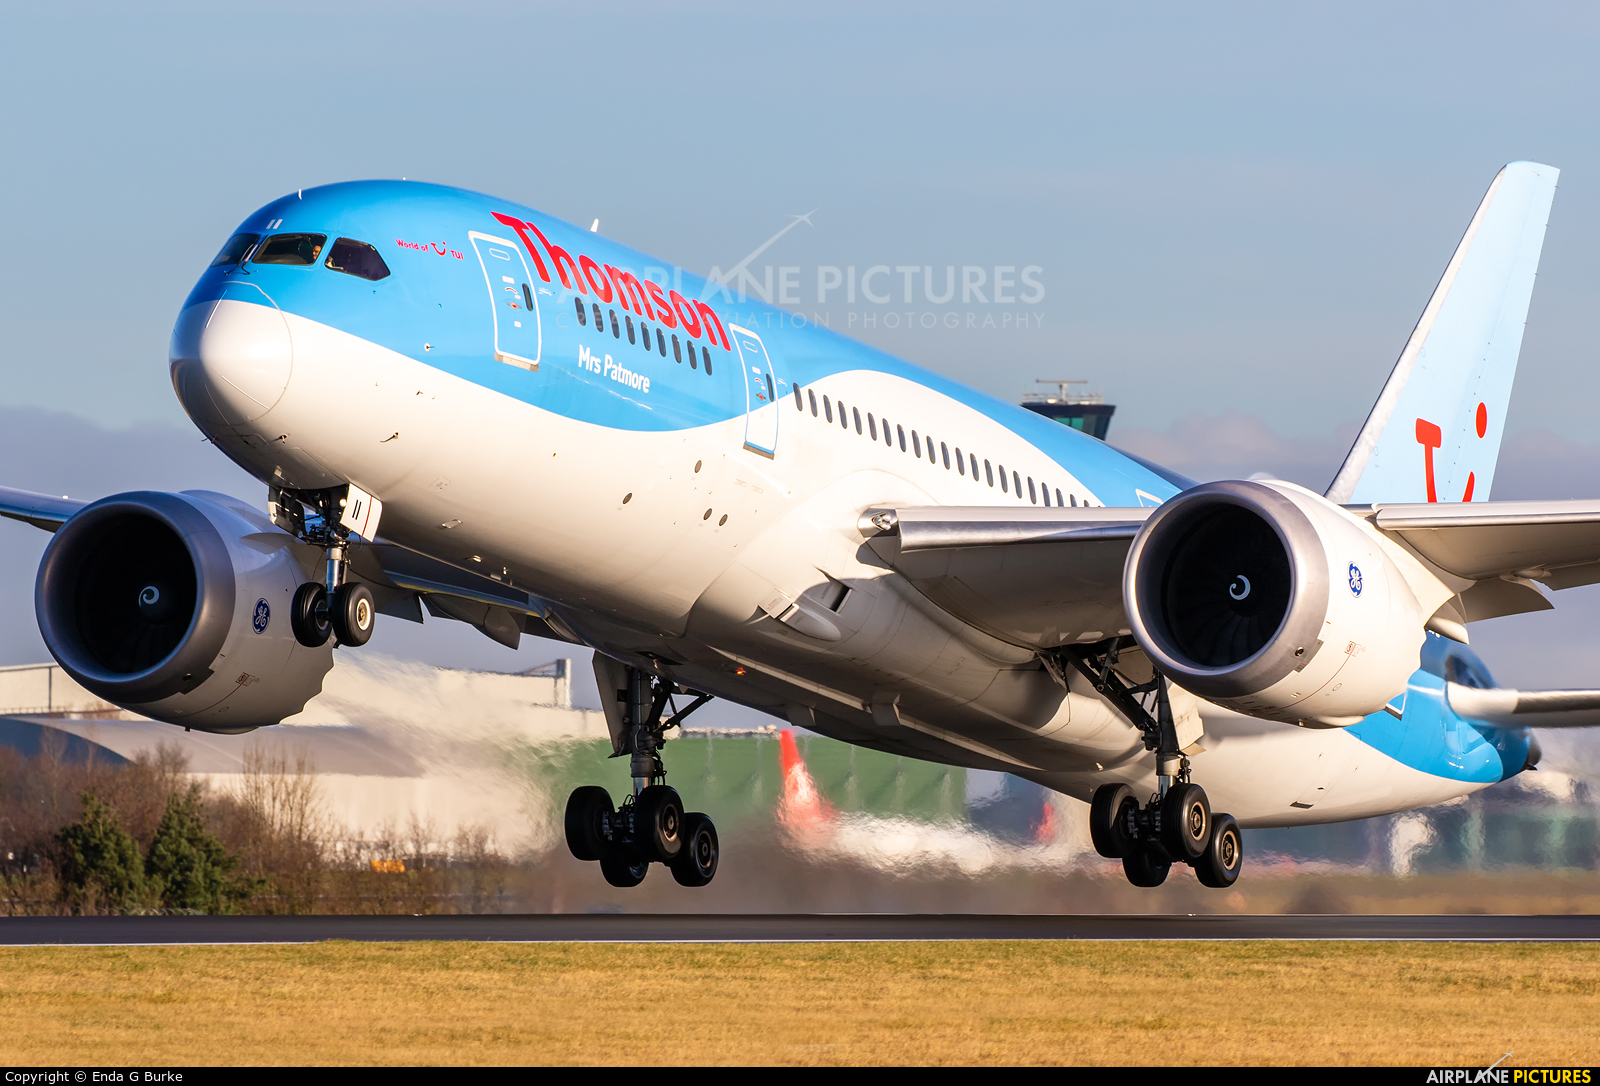 Thomson/Thomsonfly G-TUII aircraft at Manchester